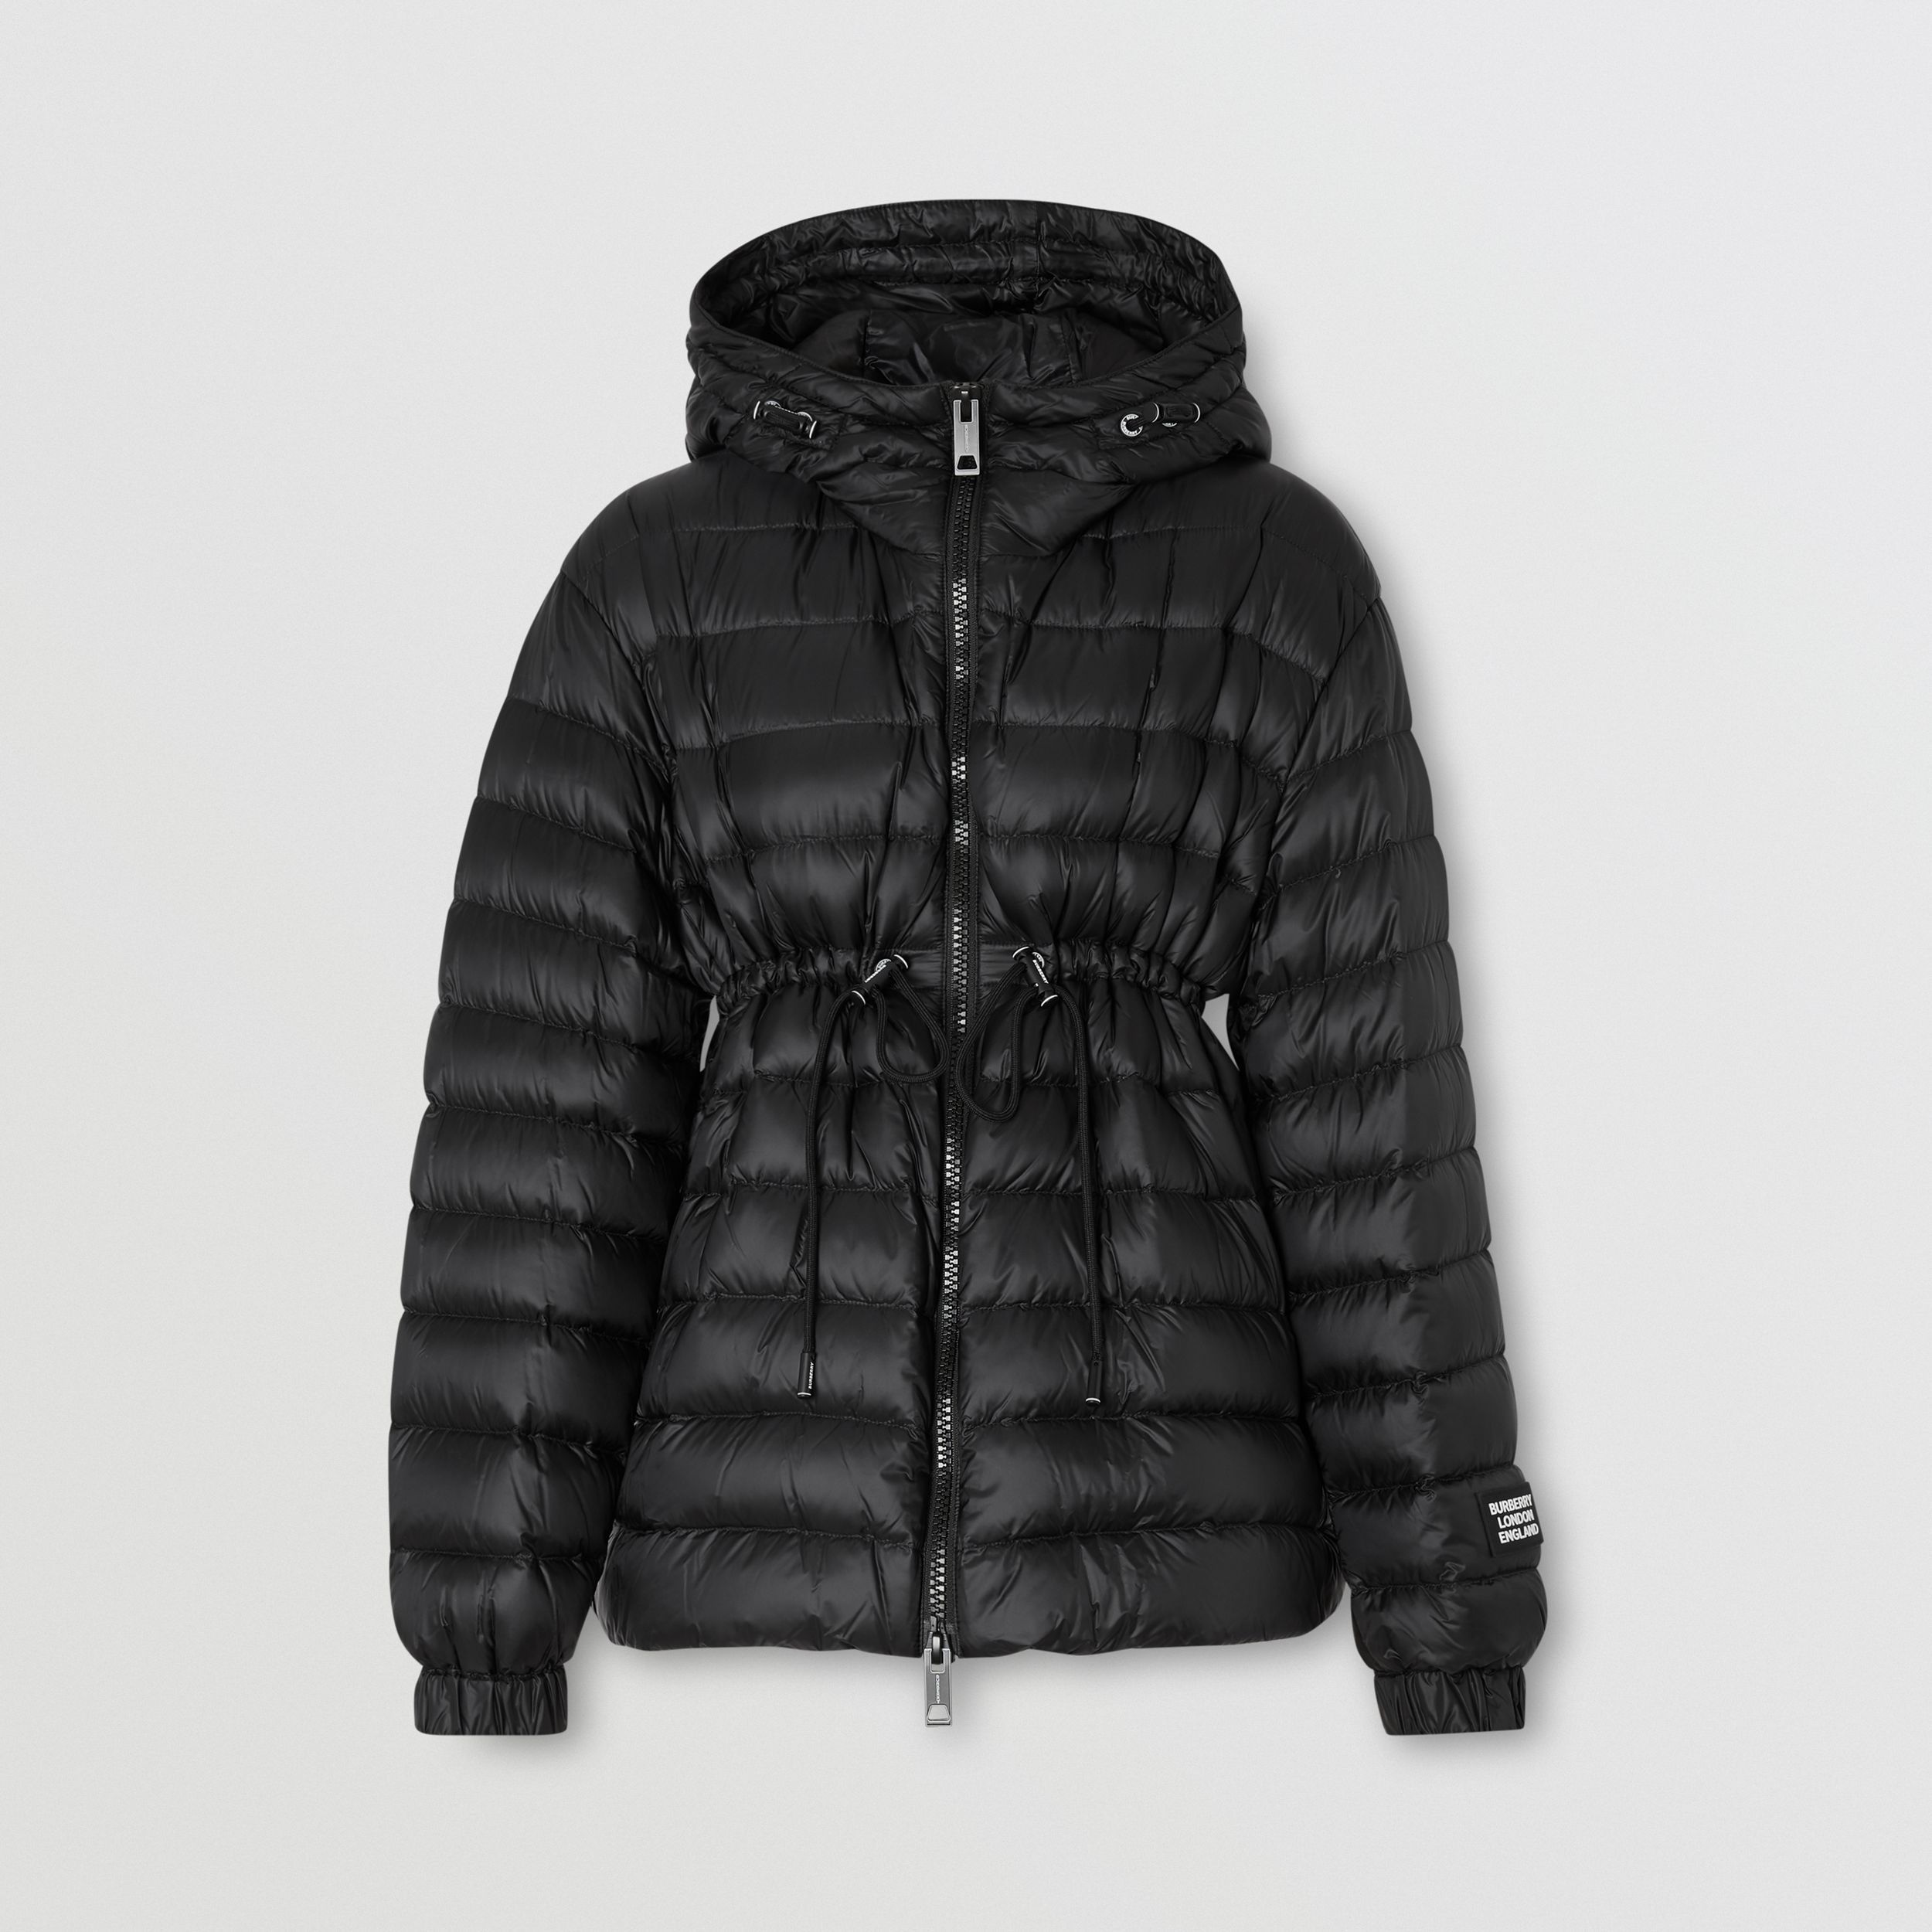 Lightweight Hooded Puffer Jacket in Black - Women | Burberry - 3